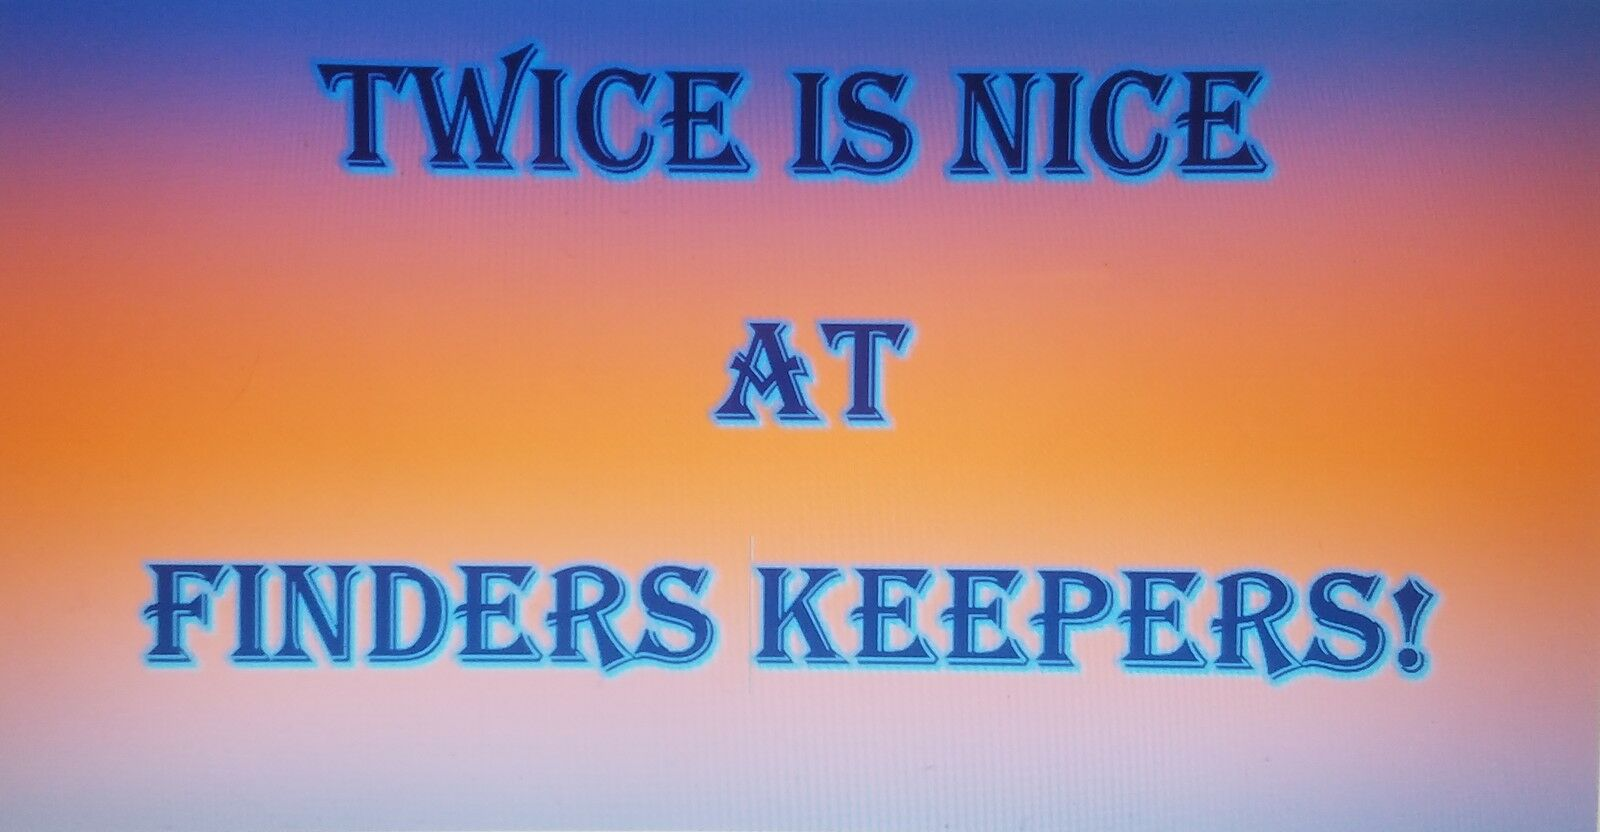 Twice Is Nice At Finders Keepers